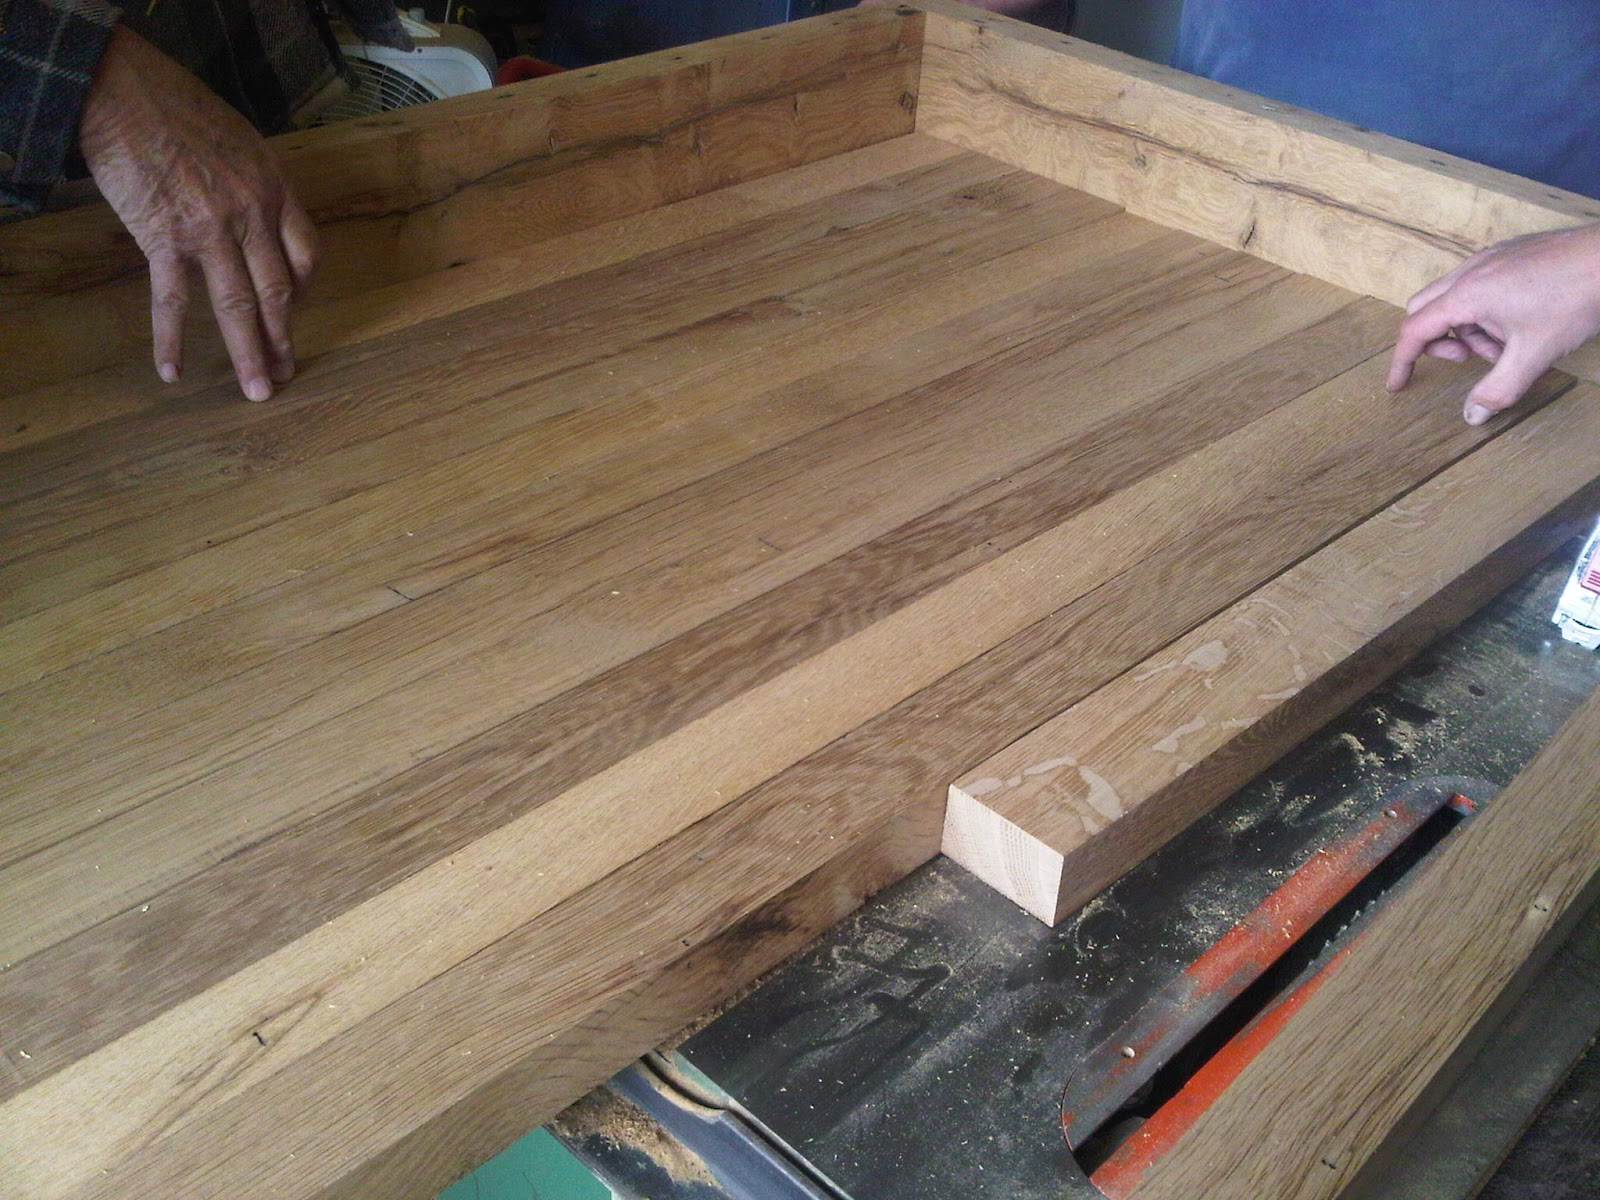 Wood Kitchen Counters Top Appliances Remodelaholic Country With Diy Reclaimed Countertop Tutorial